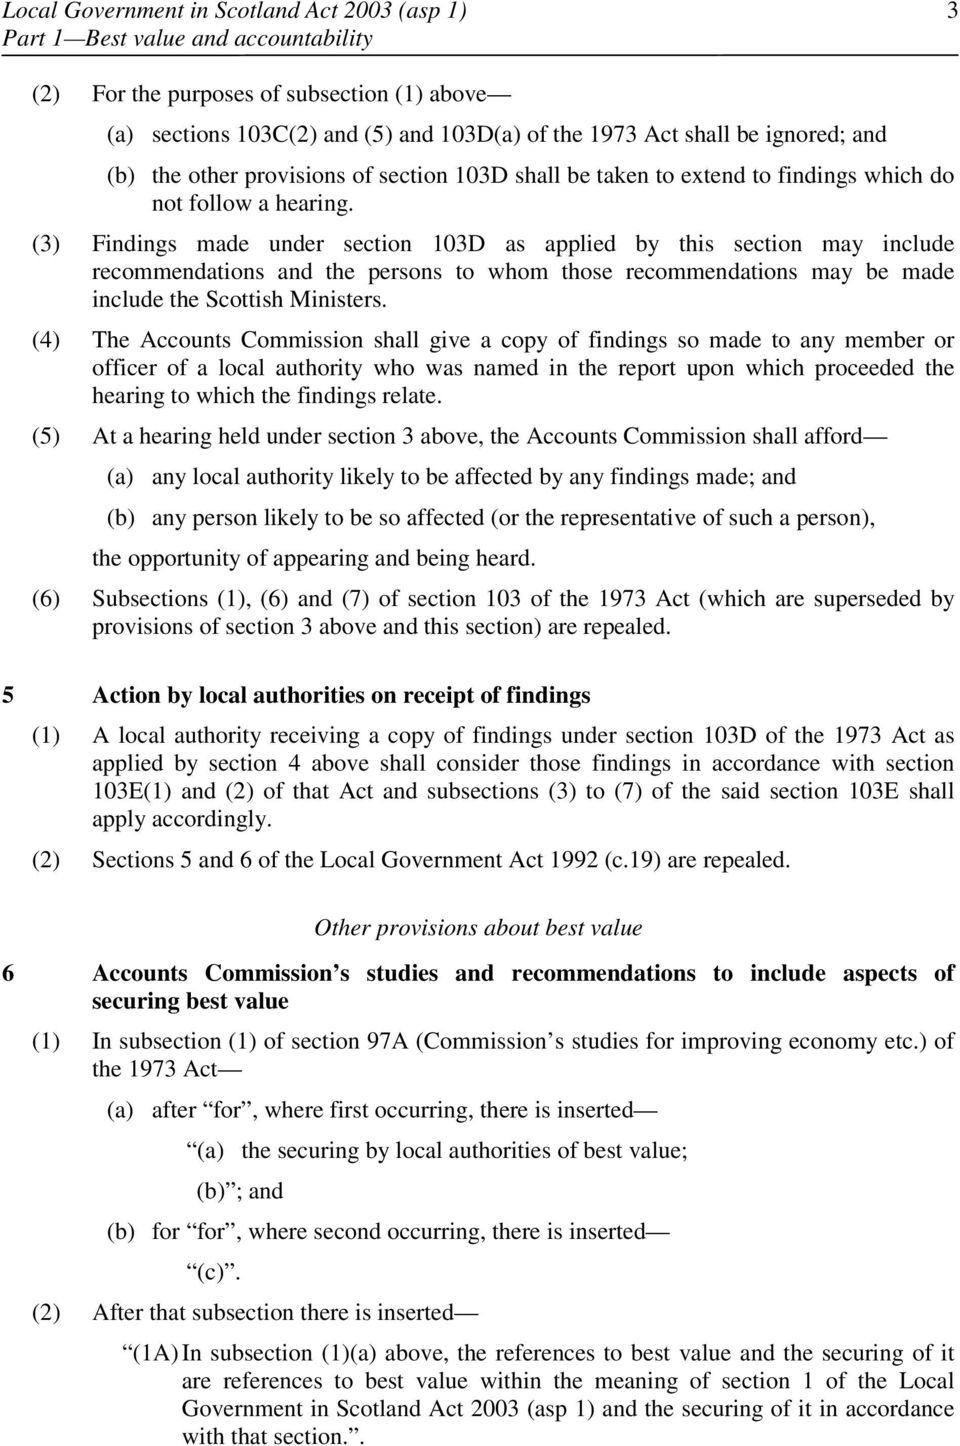 (3) Findings made under section 103D as applied by this section may include recommendations and the persons to whom those recommendations may be made include the Scottish Ministers.